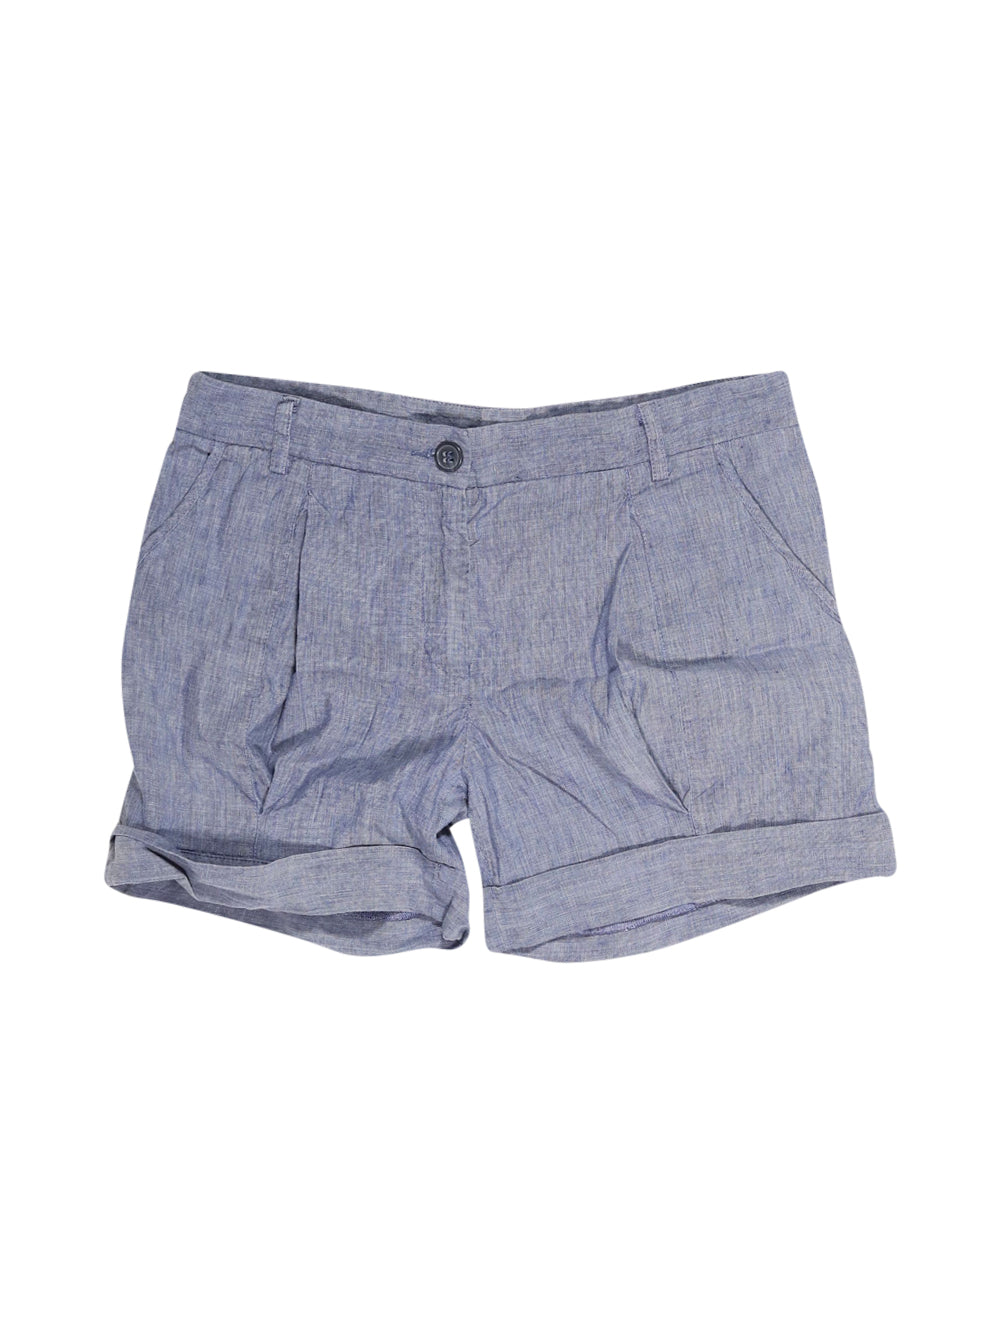 Front photo of Preloved Brian Dales Blue Woman's shorts - size 12/L